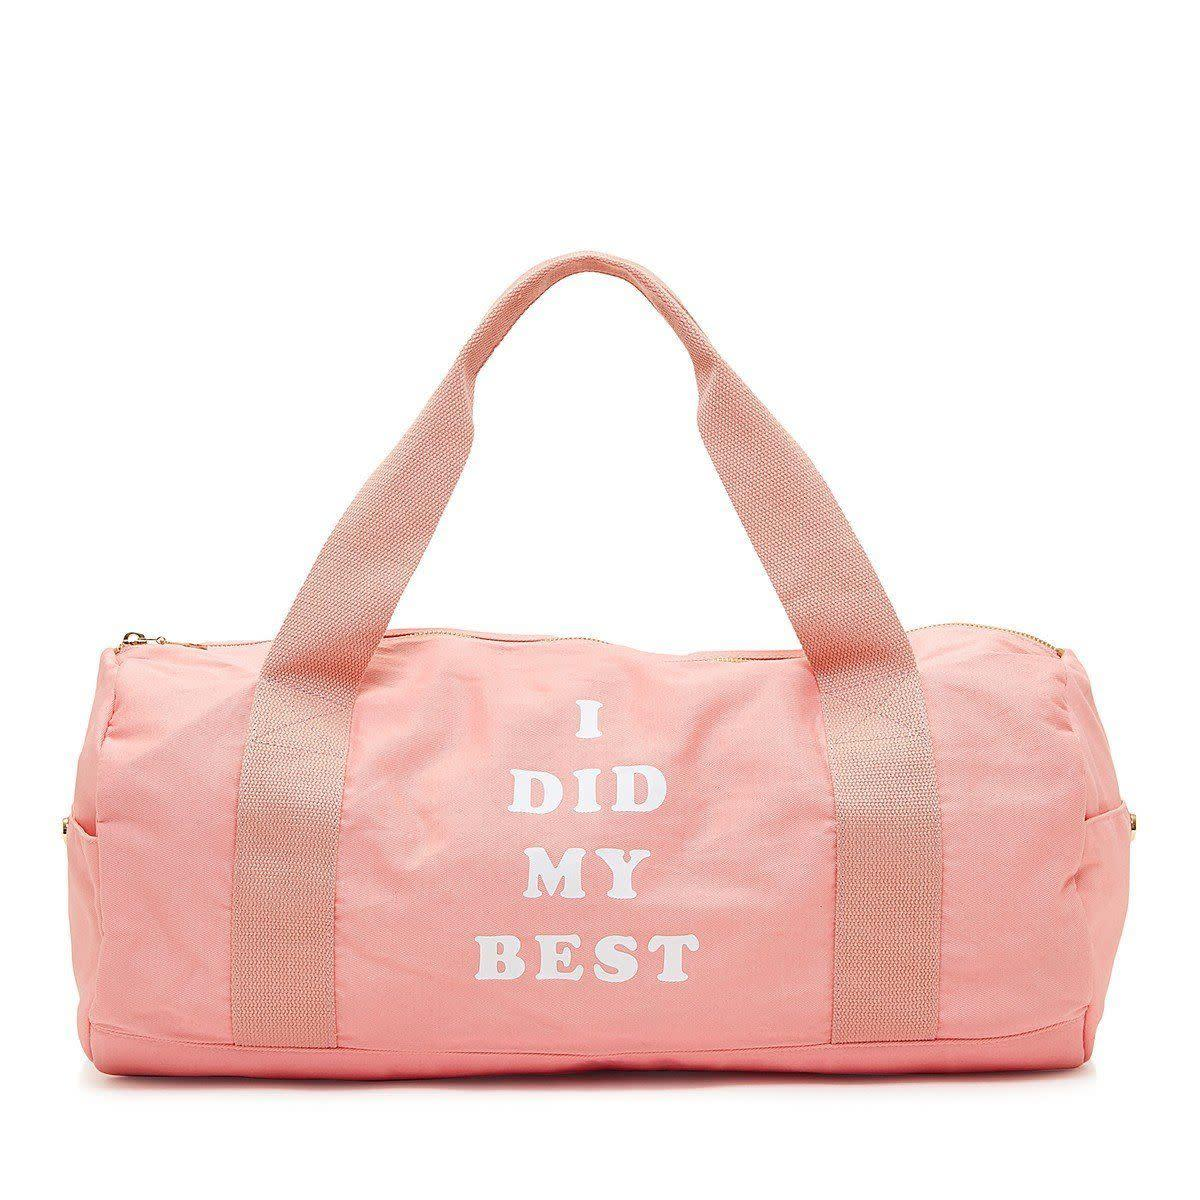 "<i>Buy it from <a href=""https://www.bloomingdales.com/shop/product/ban.do-work-it-out-gym-bag-i-did-my-best?ID=2489604&amp;CategoryID=3865#fn=ppp%3Dundefined%26sp%3D1%26rId%3D15%26spc%3D582%26cm_kws%3Dtote%20bag%26spp%3D22%26pn%3D1%7C7%7C22%7C582%26rsid%3Dundefined"" rel=""nofollow noopener"" target=""_blank"" data-ylk=""slk:Bloomingdale's"" class=""link rapid-noclick-resp"">Bloomingdale's</a> for $35.</i>"